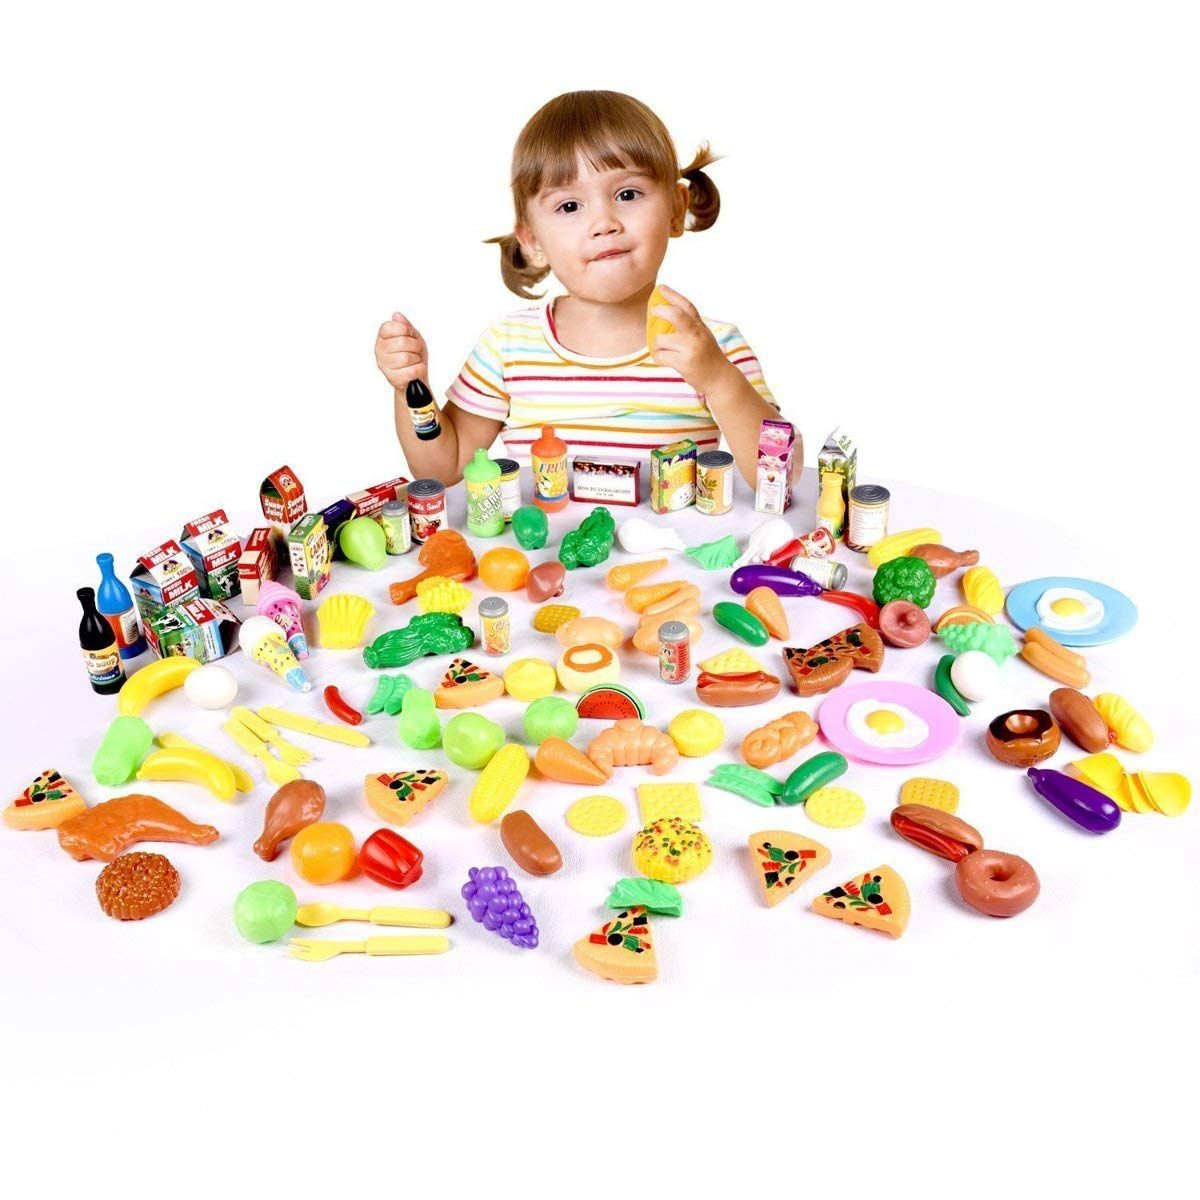 play food set for kids and toy food for pretend play huge 130 pieces rh pinterest com